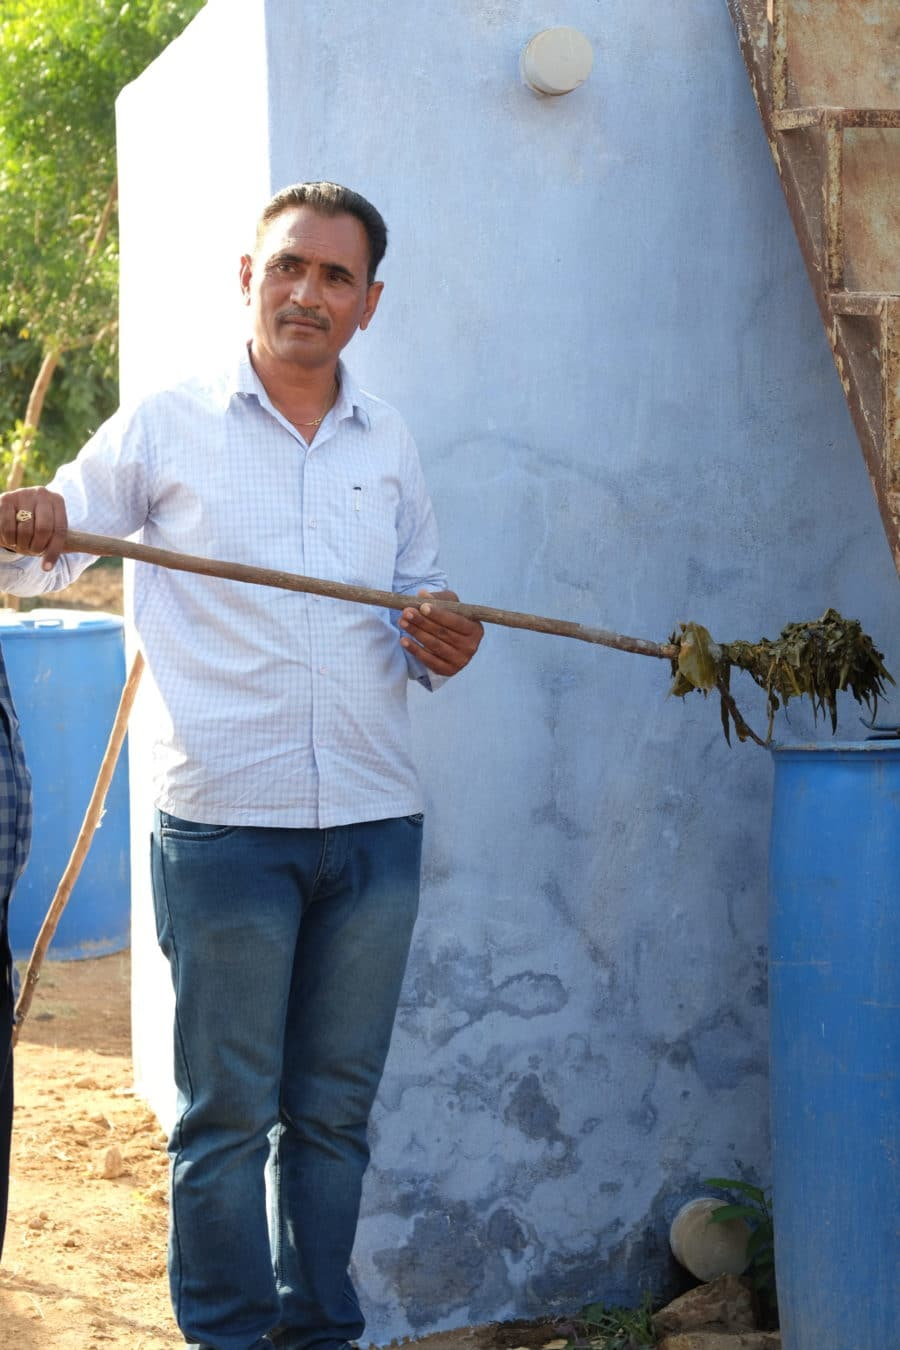 An Indian farmer holds a paddle with organic inputs.